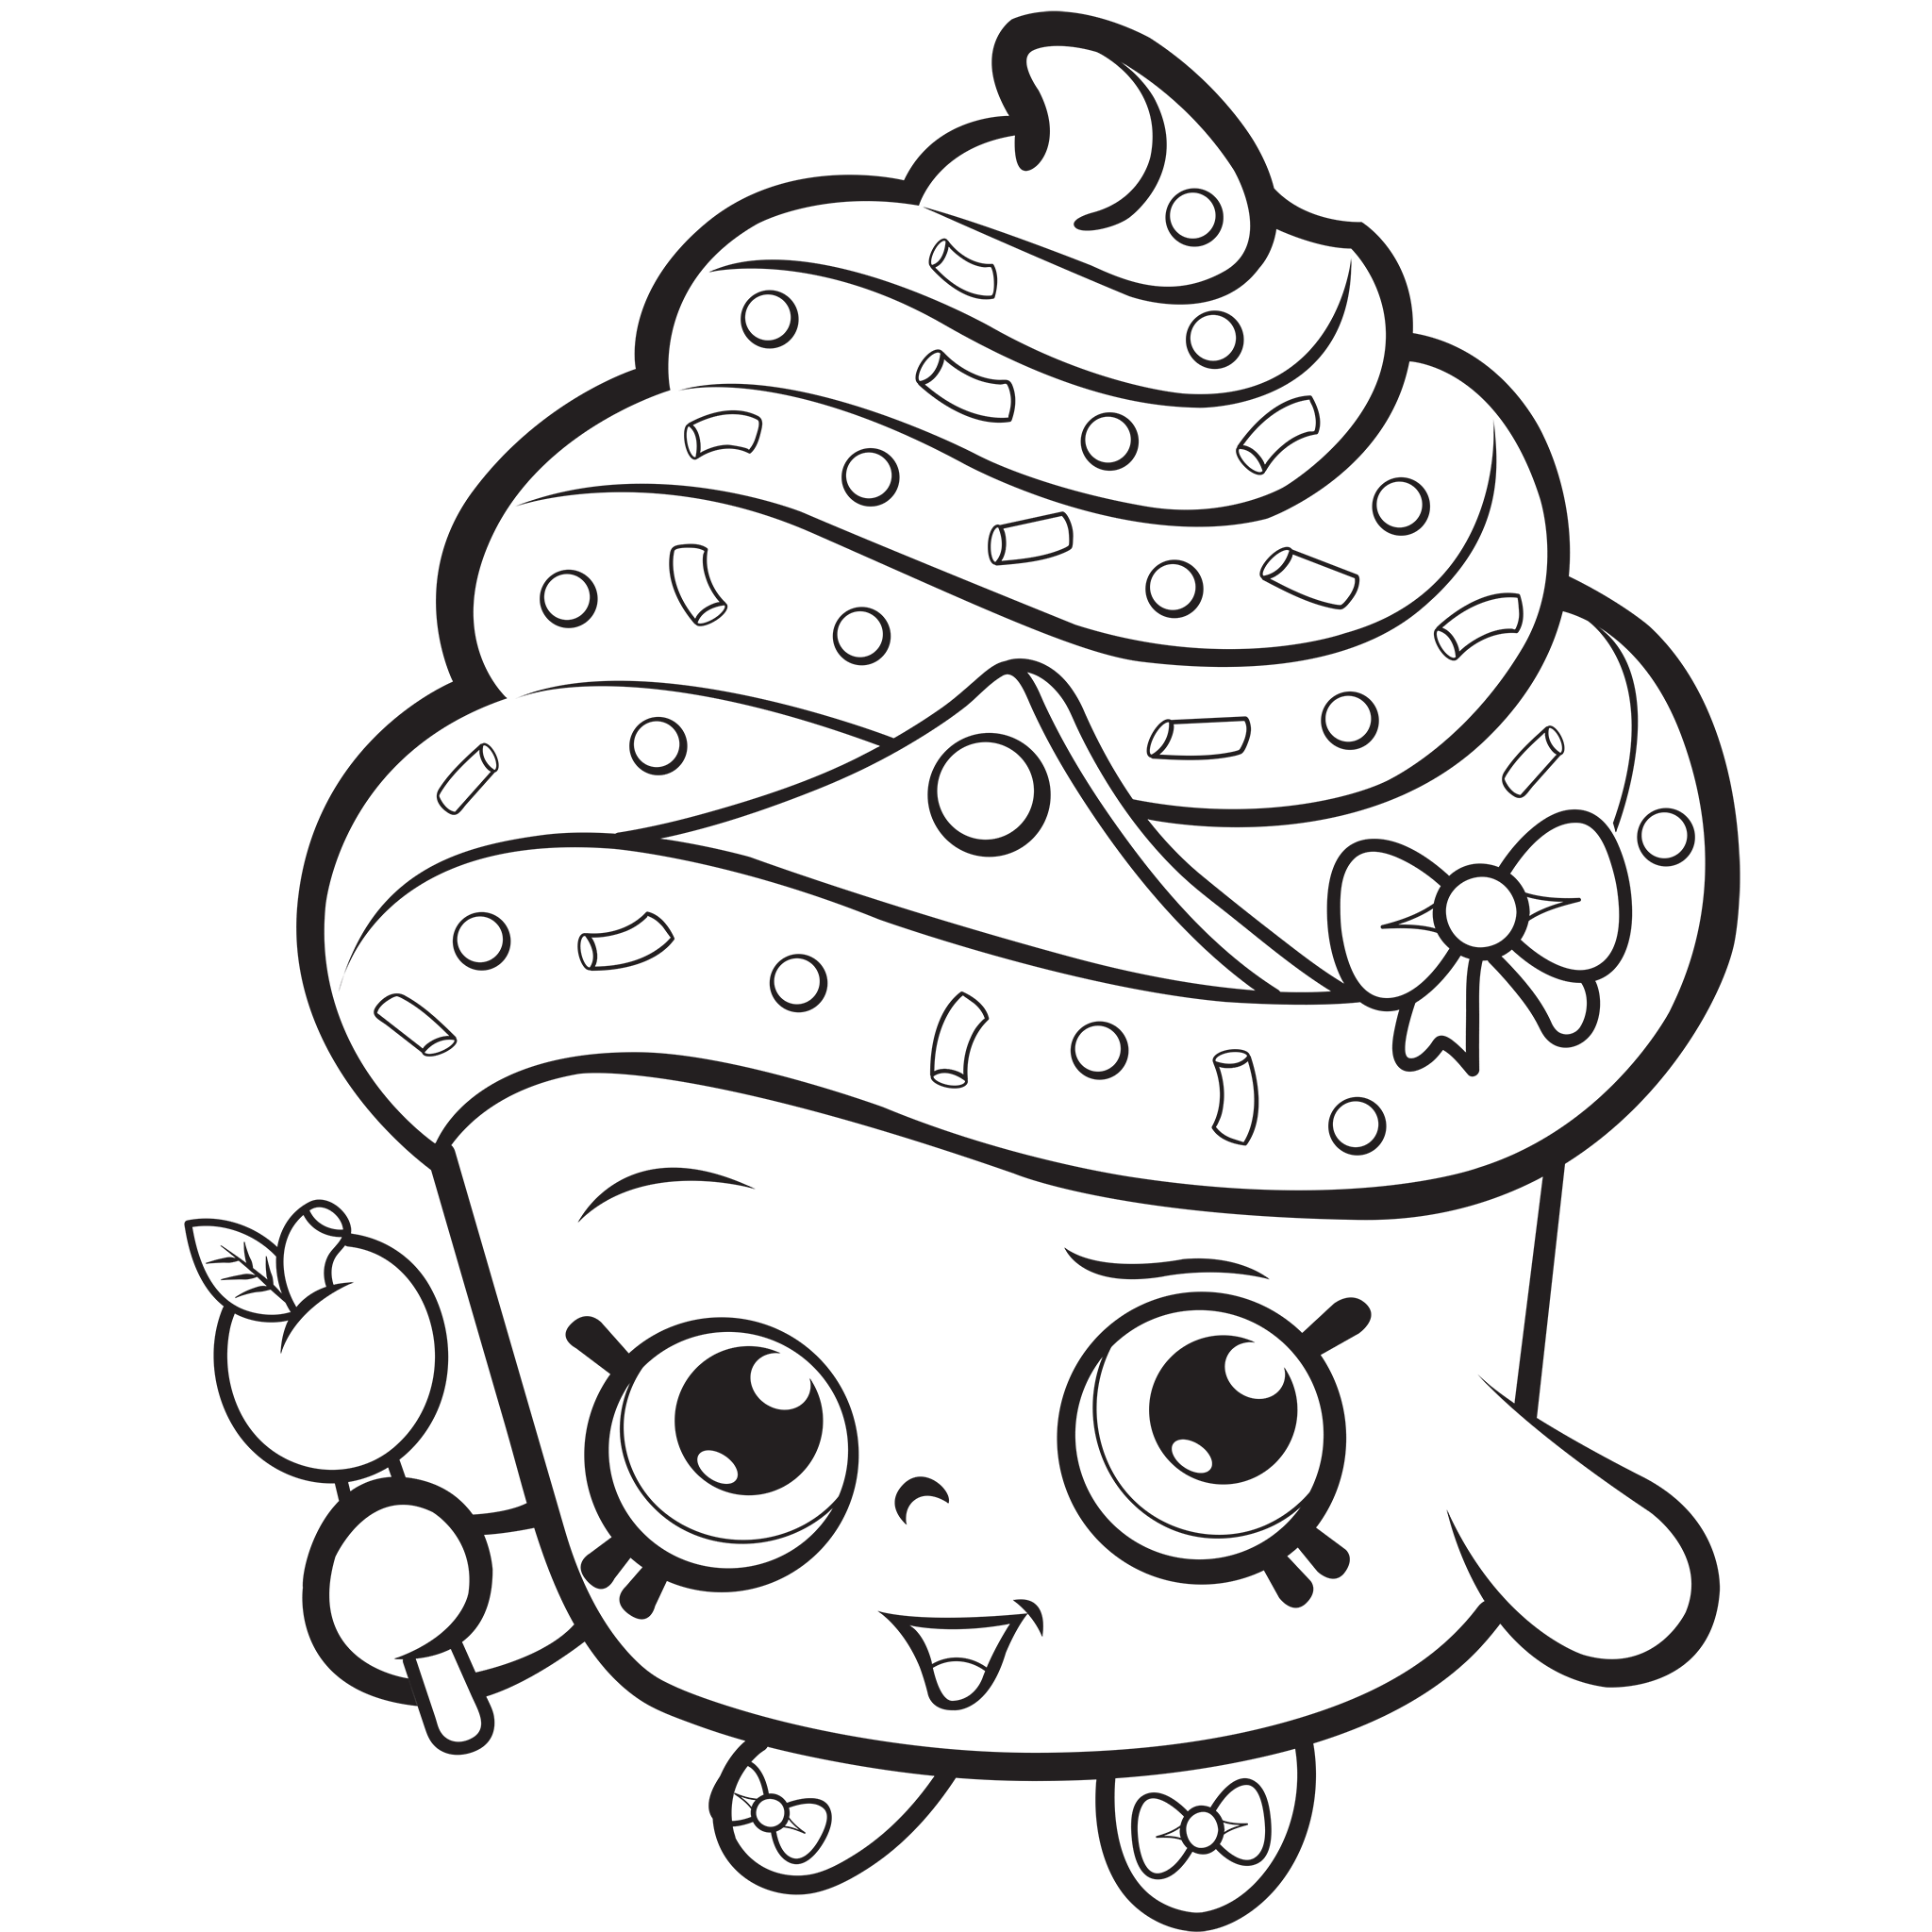 16 Unique And Rare Shopkins Coloring Pages | Colorear, Cuadernos de ...